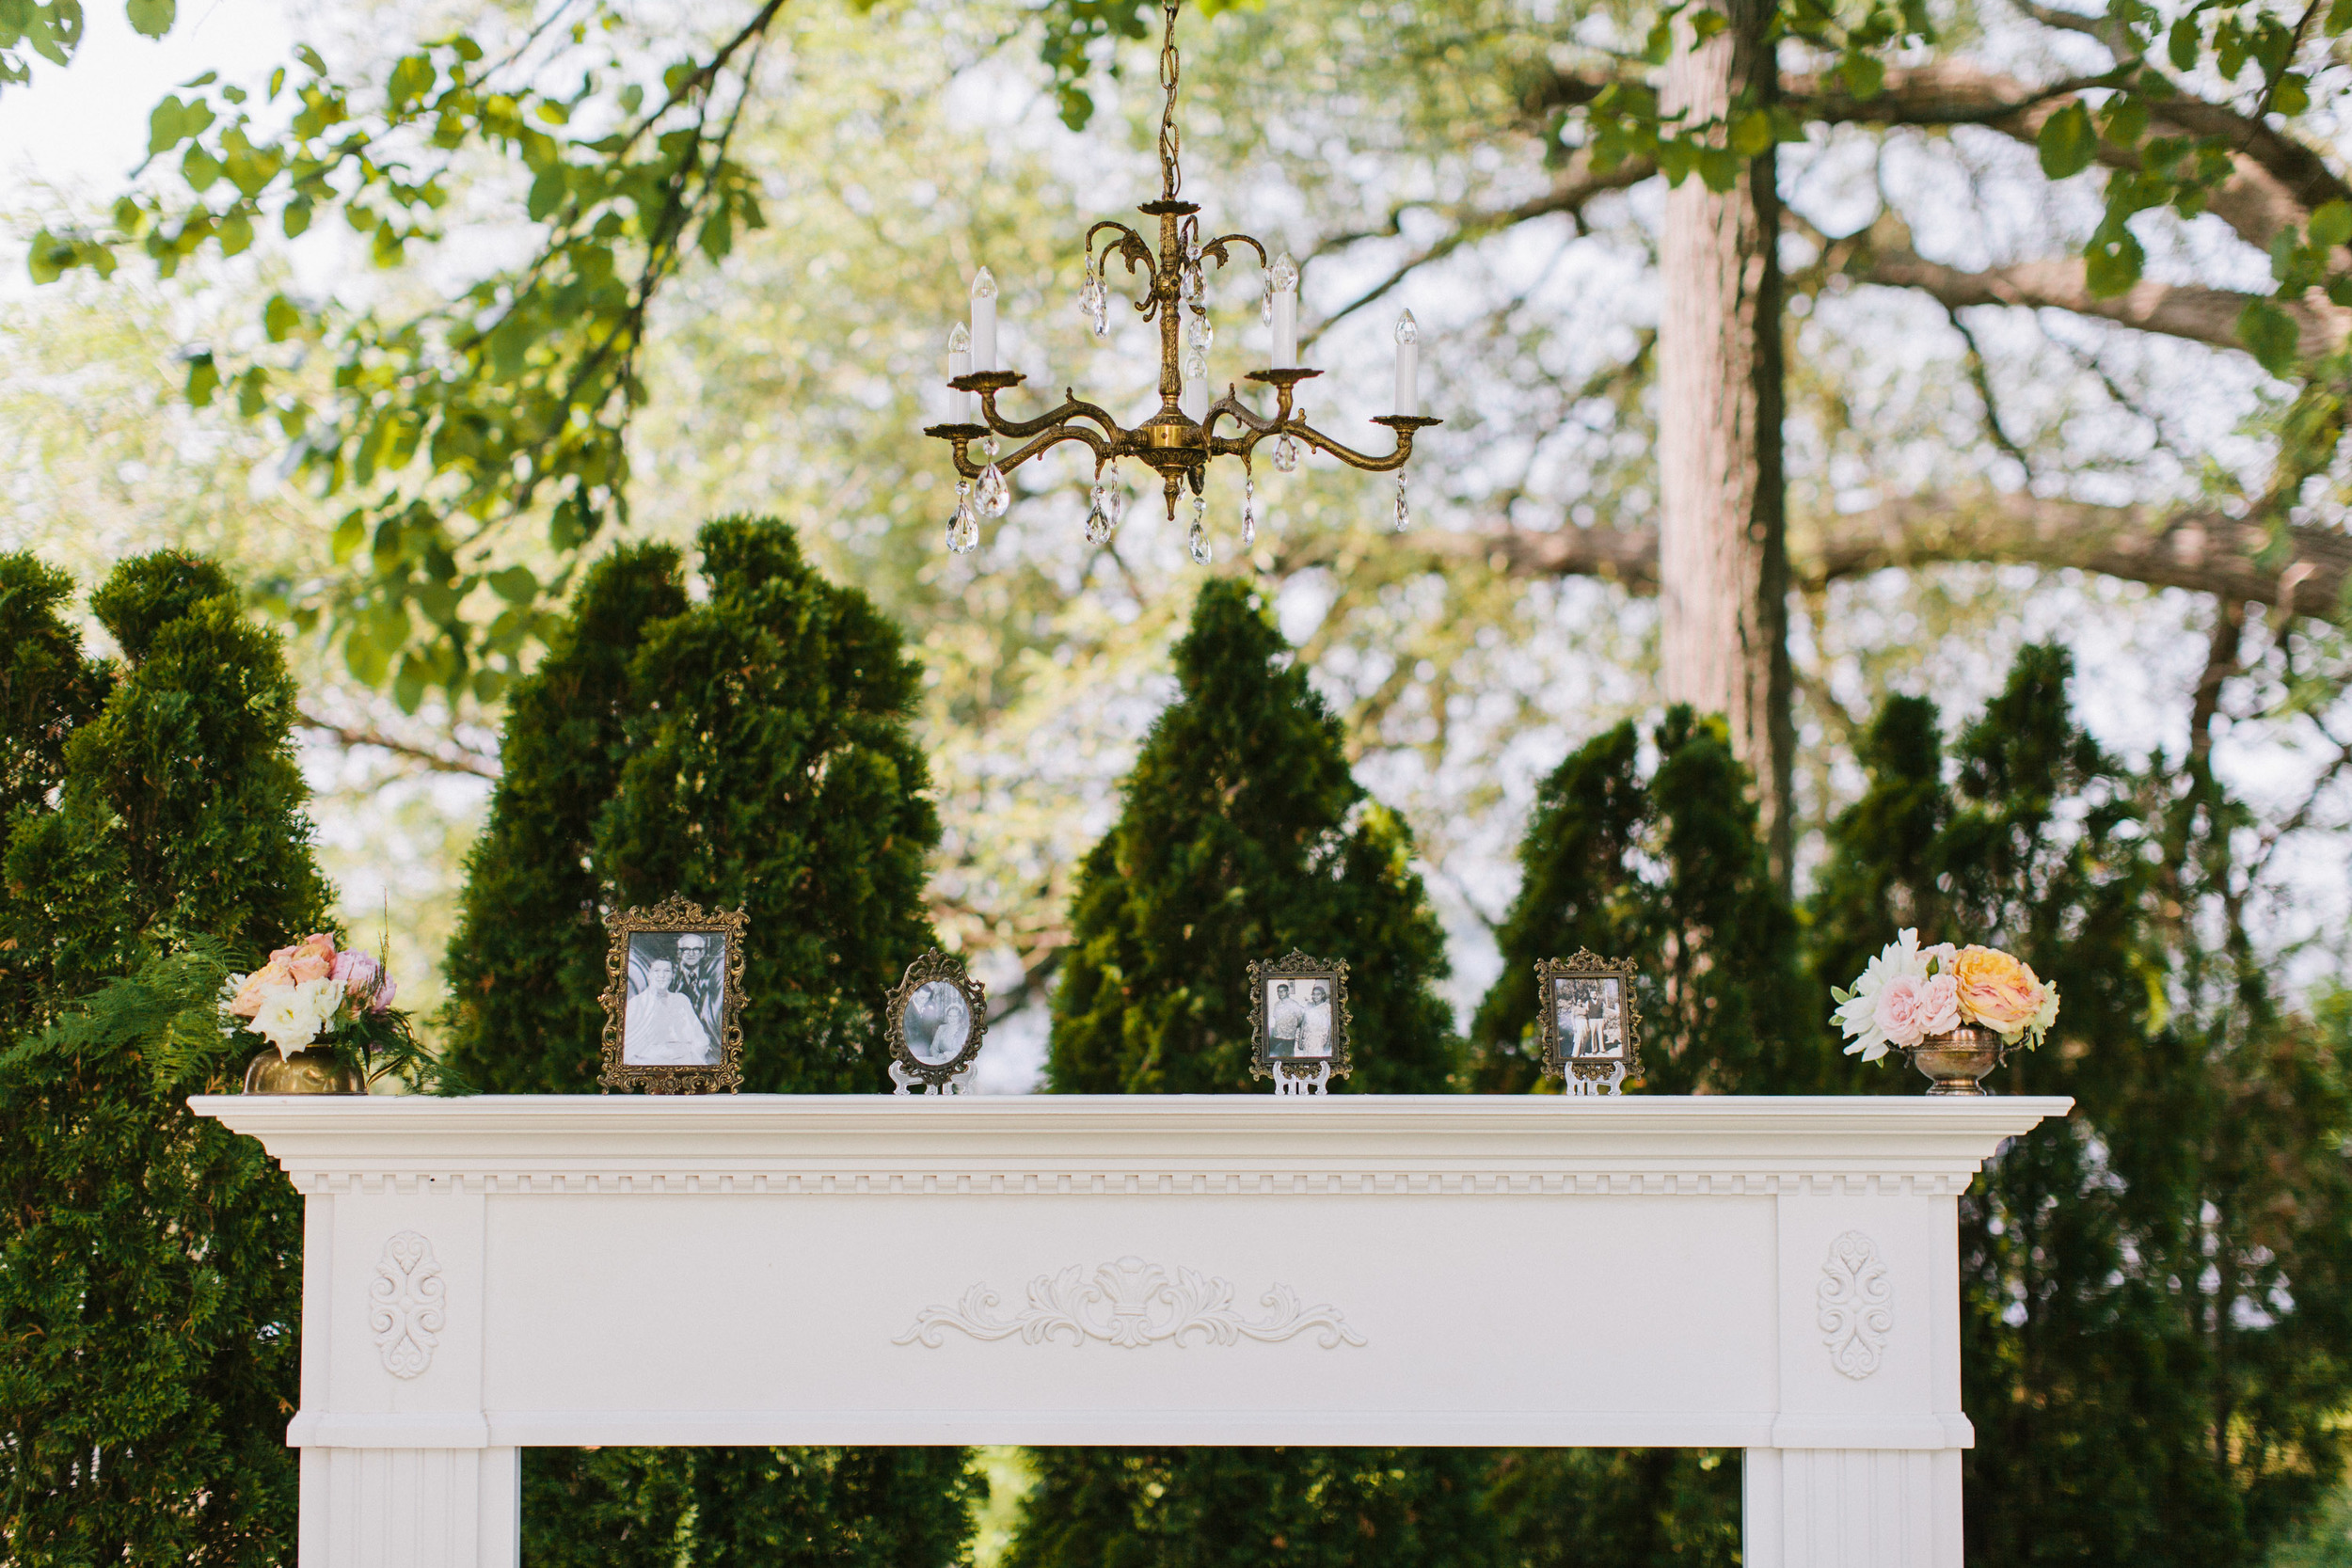 Bekki Draper - Ian - vintage - backyard-wedding-025.jpg